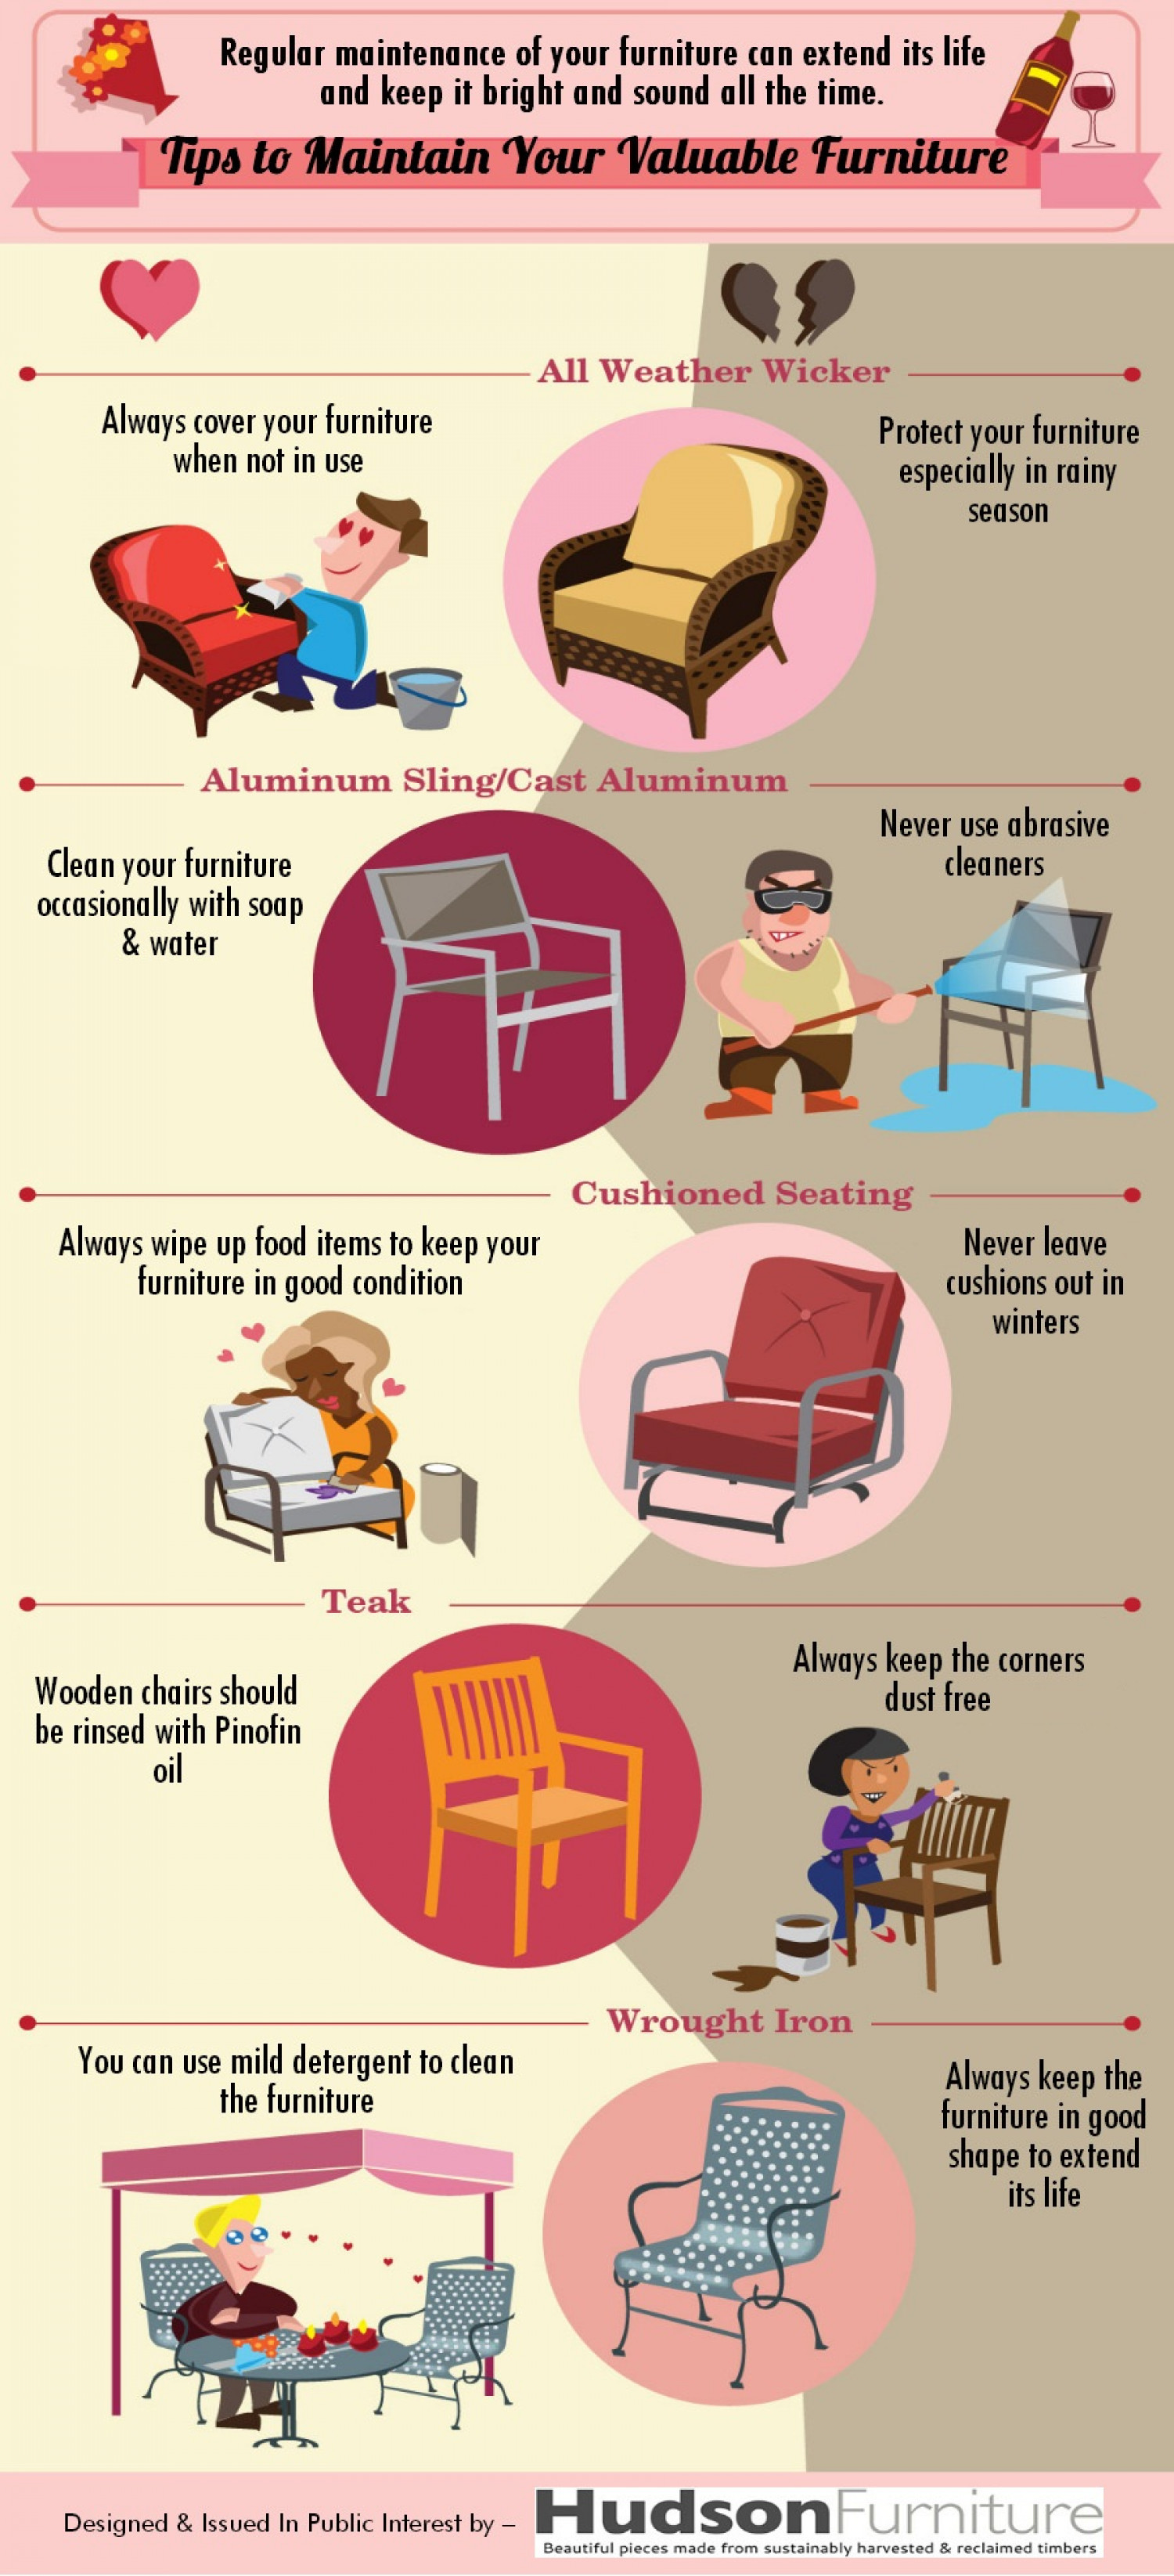 Tips to Maintain Your Valuable Furniture Infographic